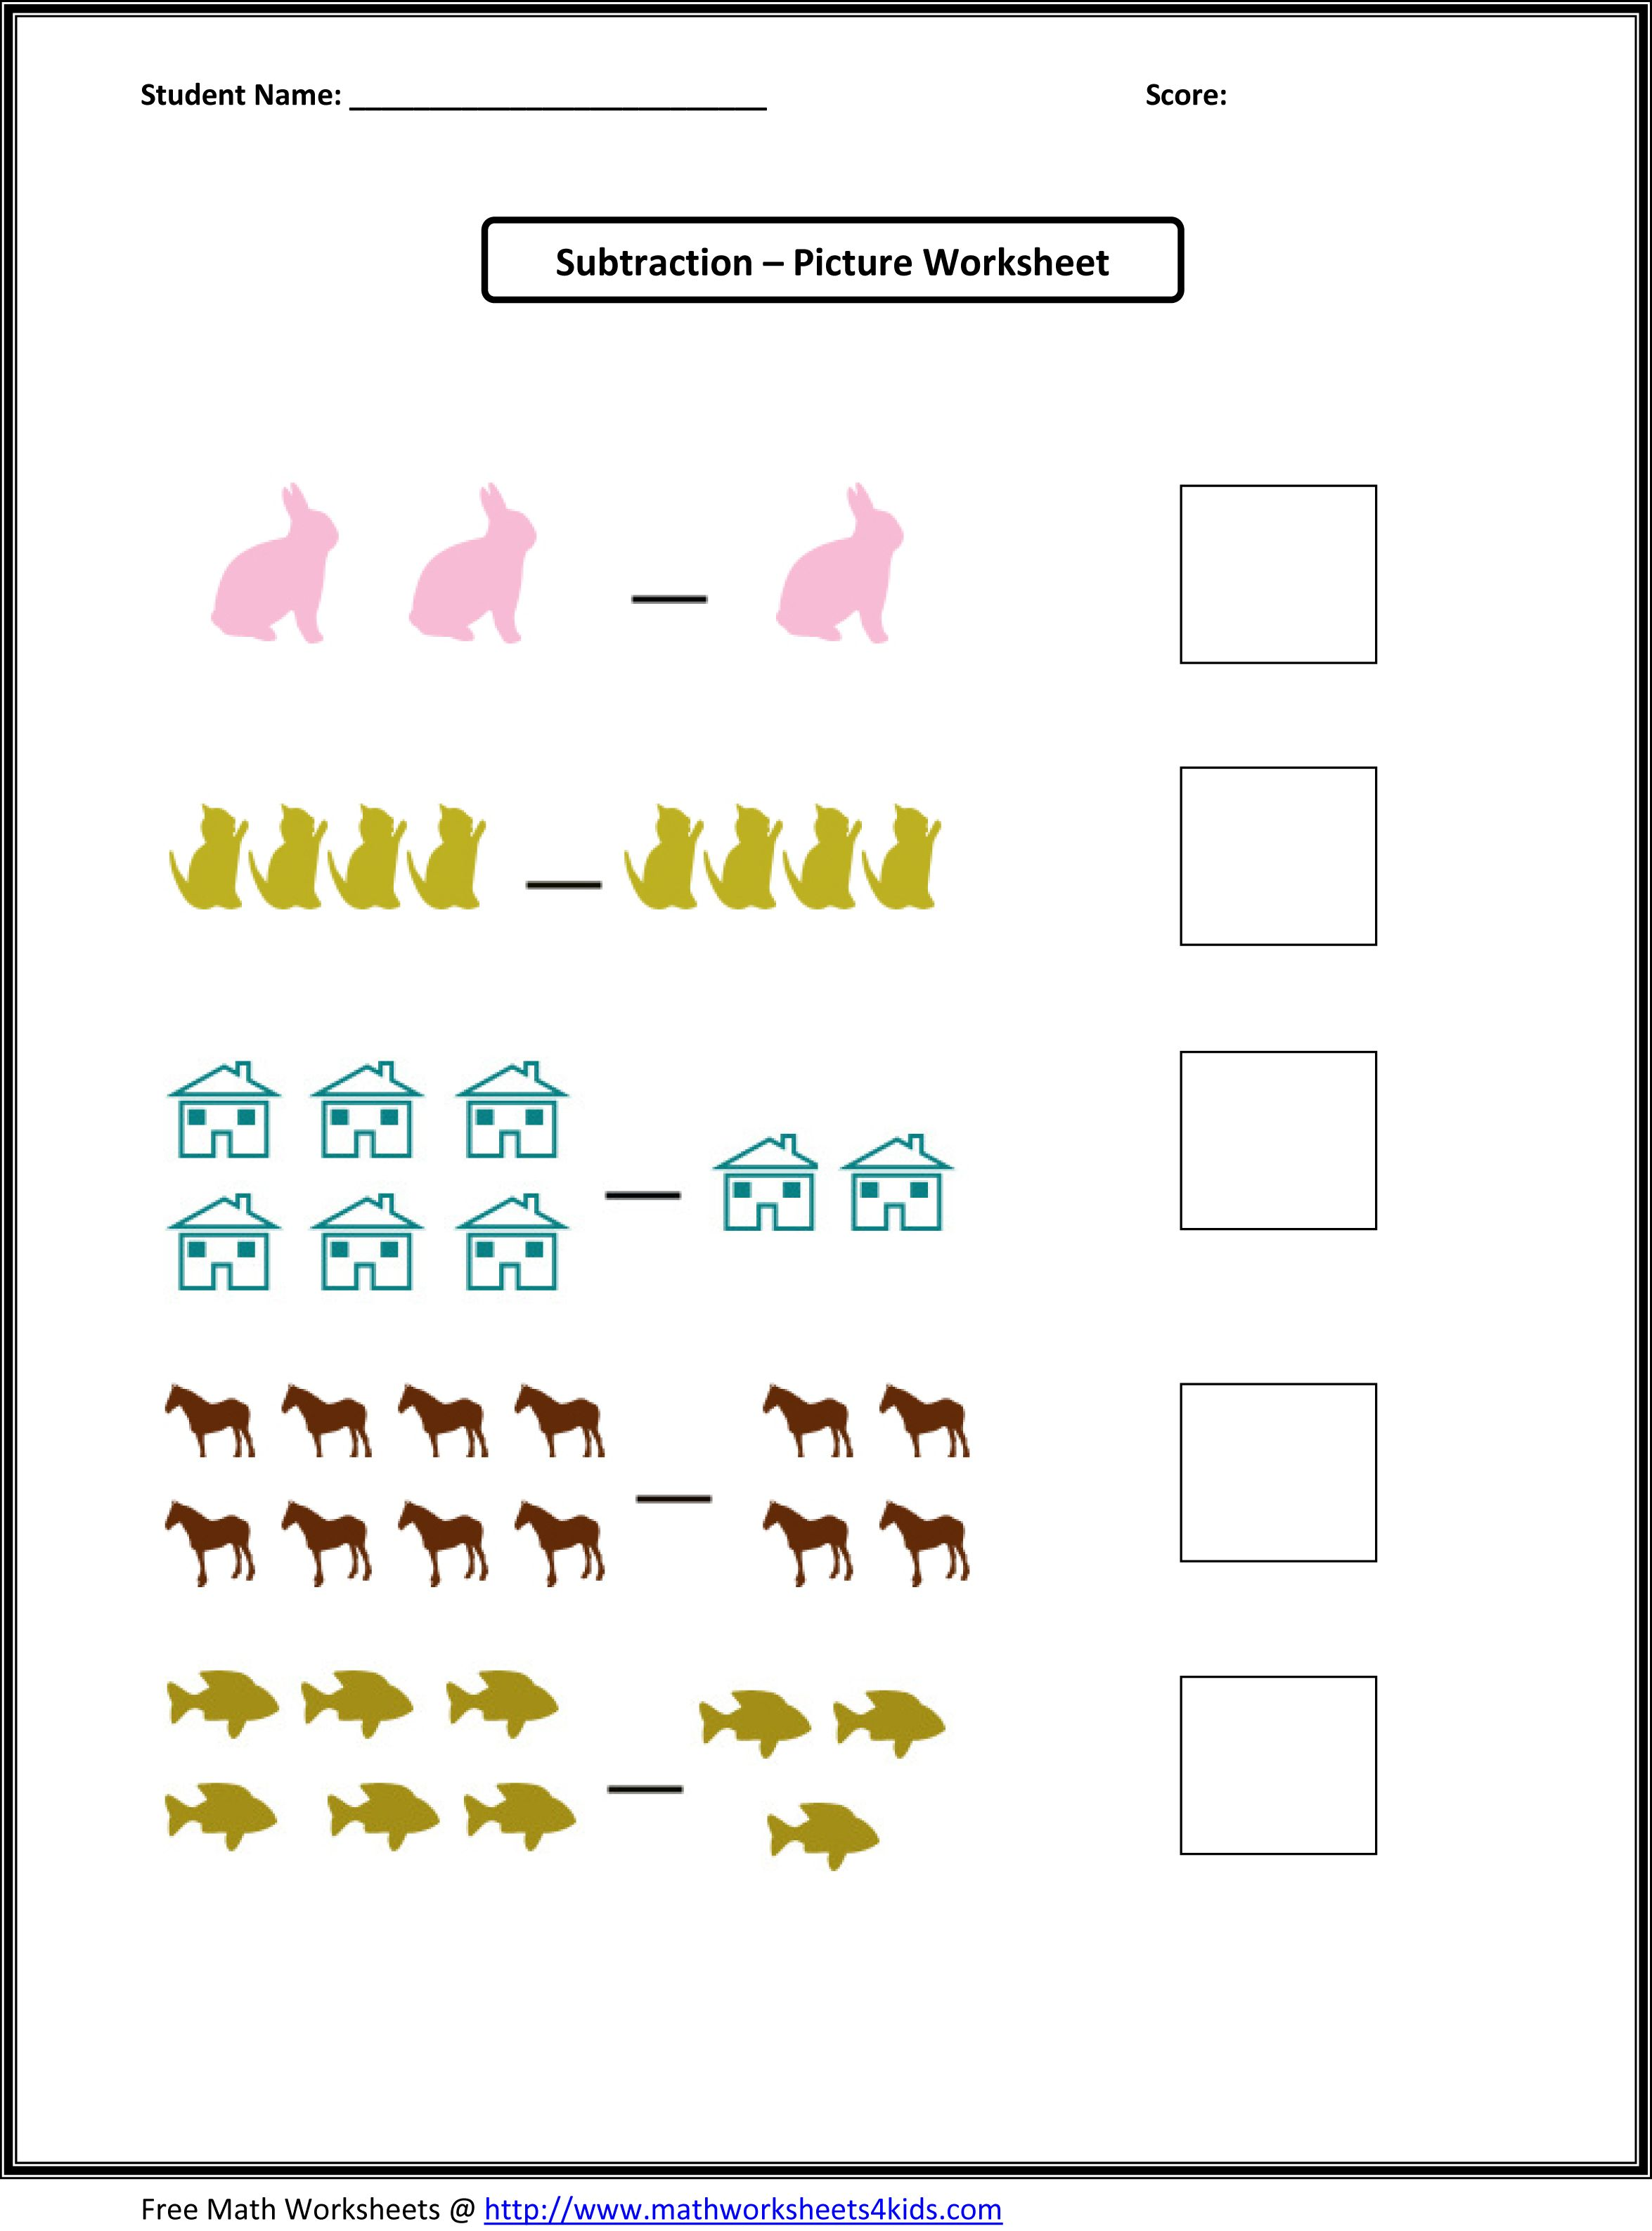 Kindergarten worksheets shapes worksheets set of picture picture math worksheets are available for you who want to test your students or childrens knowledge in math exercises robcynllc Images